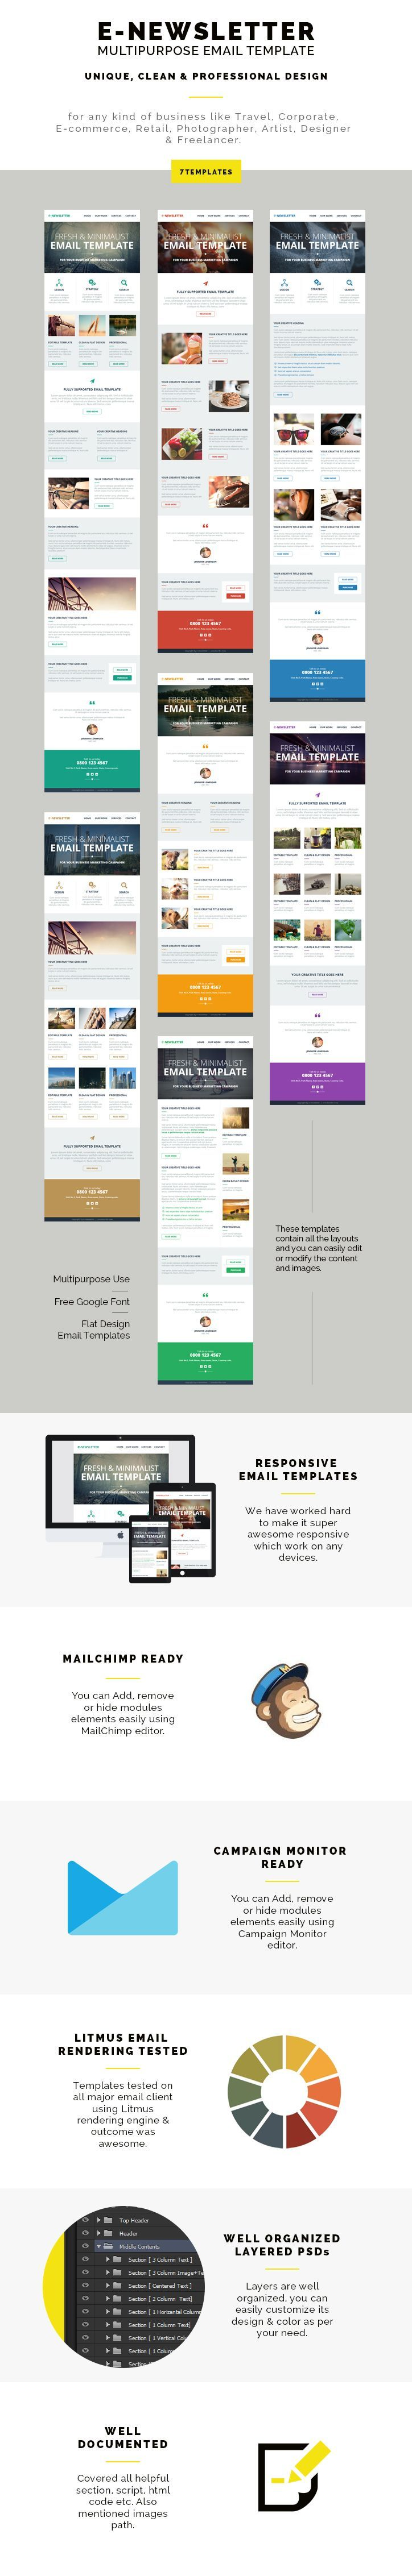 offer letter email format%0A The ENewsletter  u     Multipurpose Responsive Email Template comes with    different premade templates  There are   folders inside the tempaltes  folder named  u